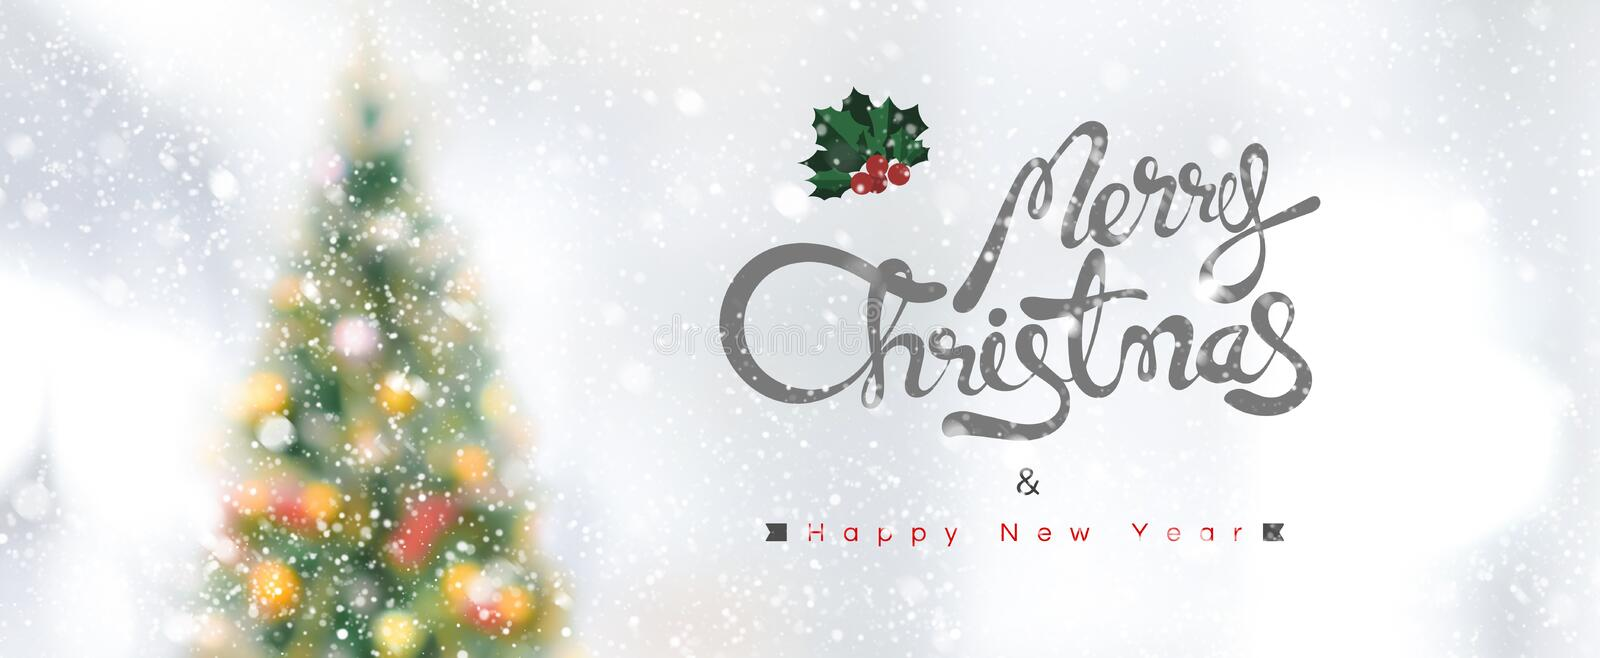 Merry Christmas and Happy New Year banner. Merry Christmas and Happy New Year text on panoramic banner background with snowfall royalty free stock photo